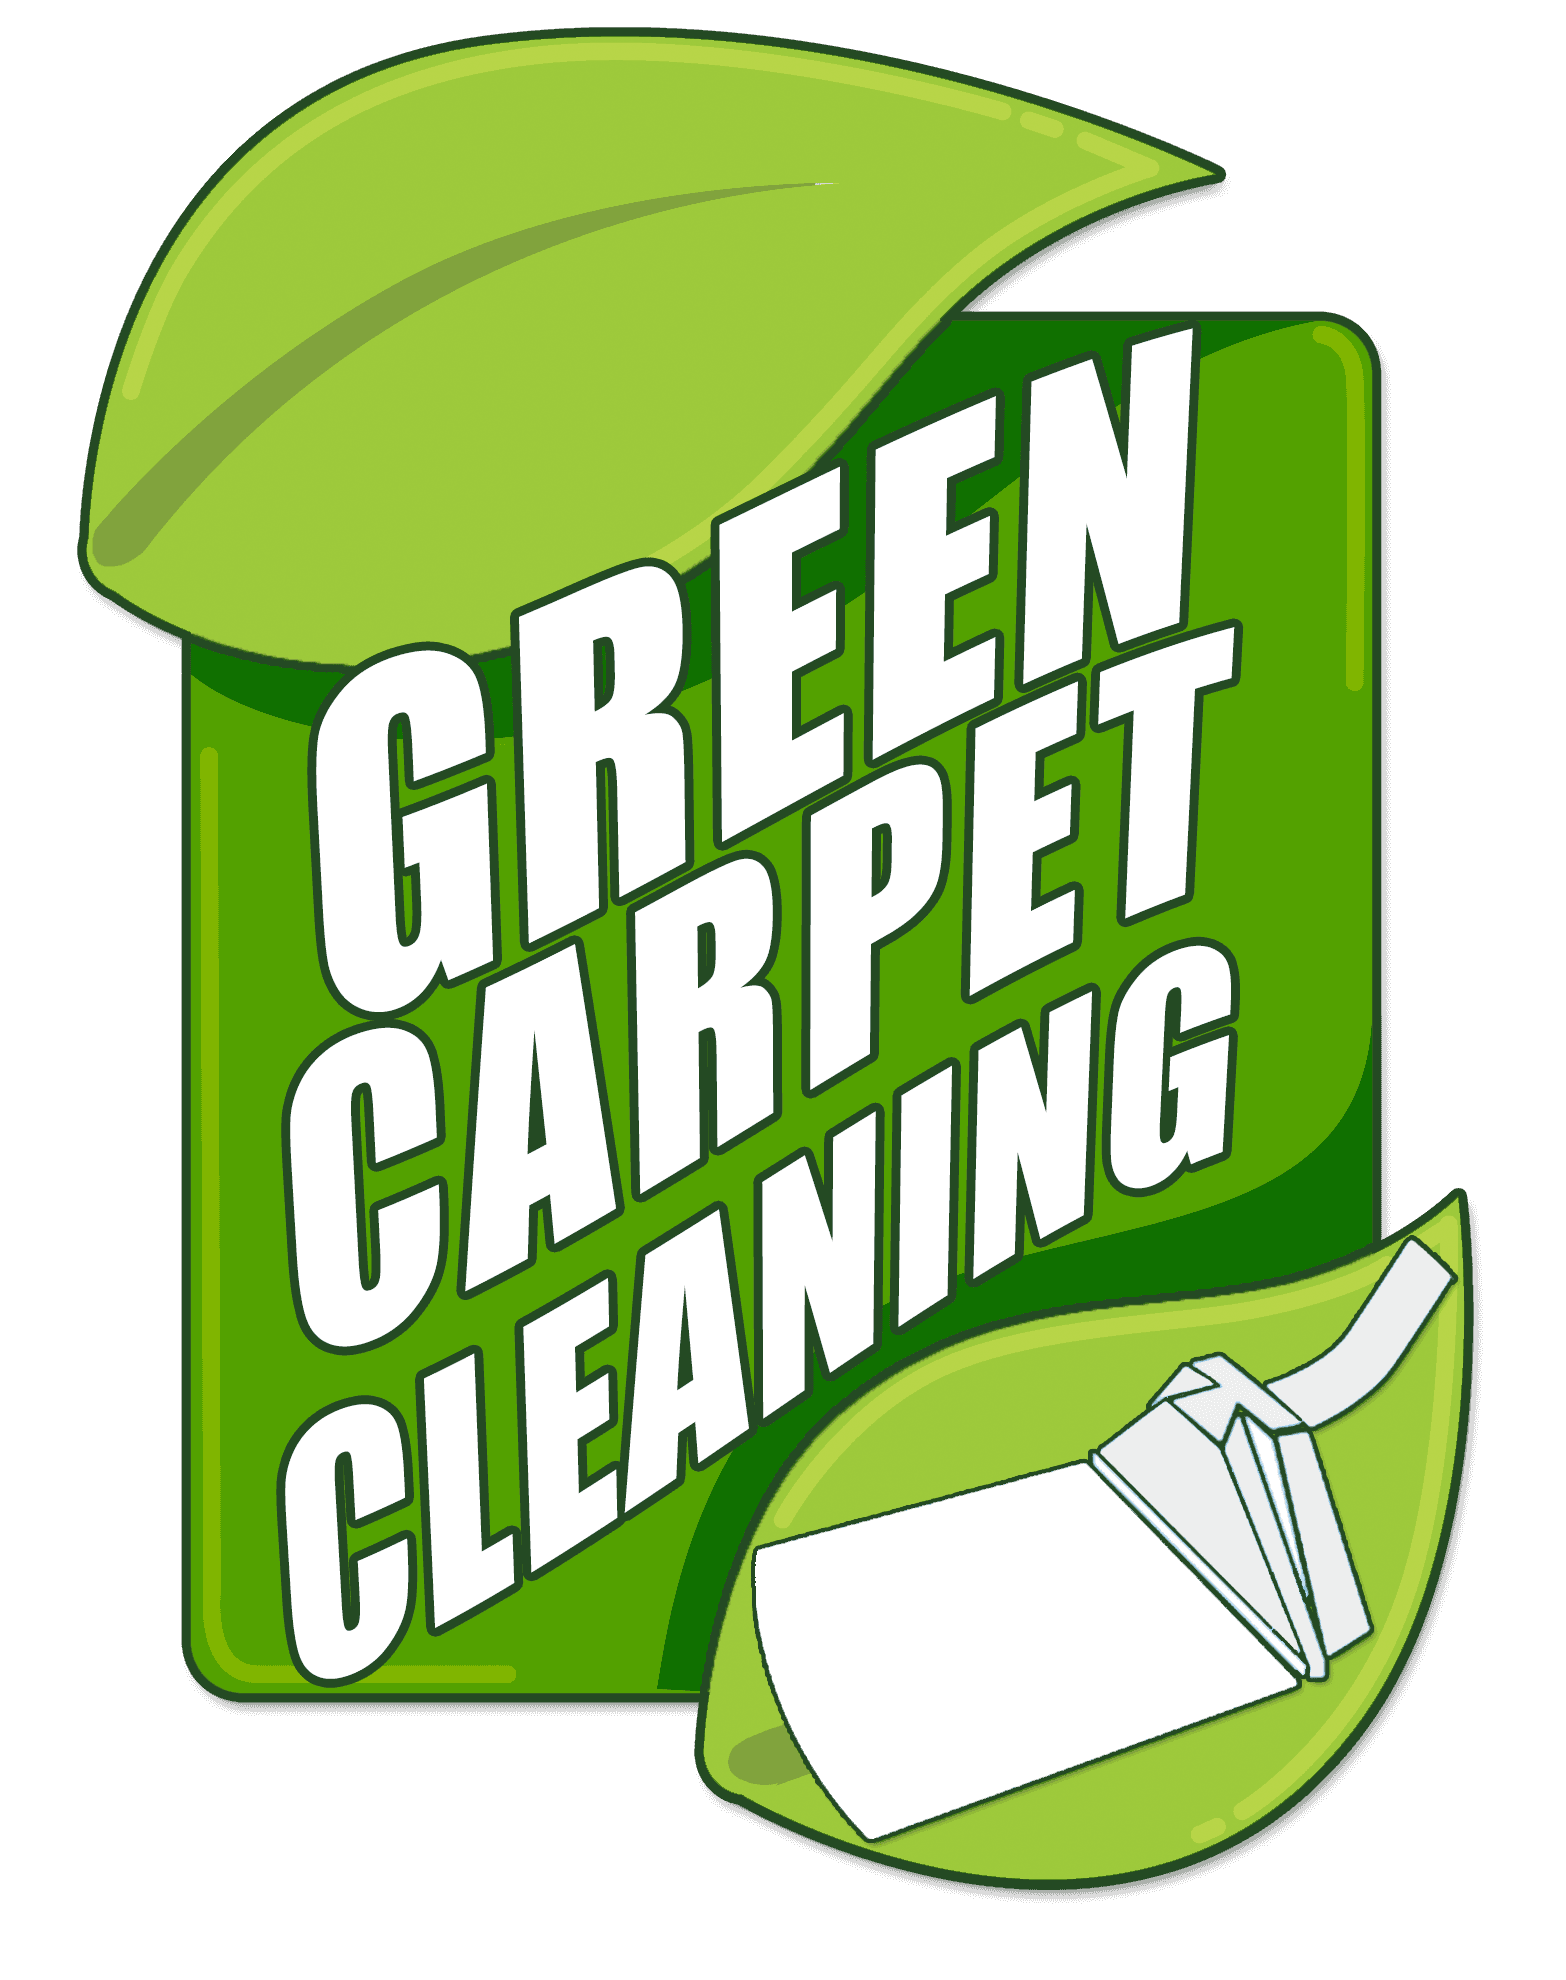 Clean clipart general cleaning. Carpet services steam company